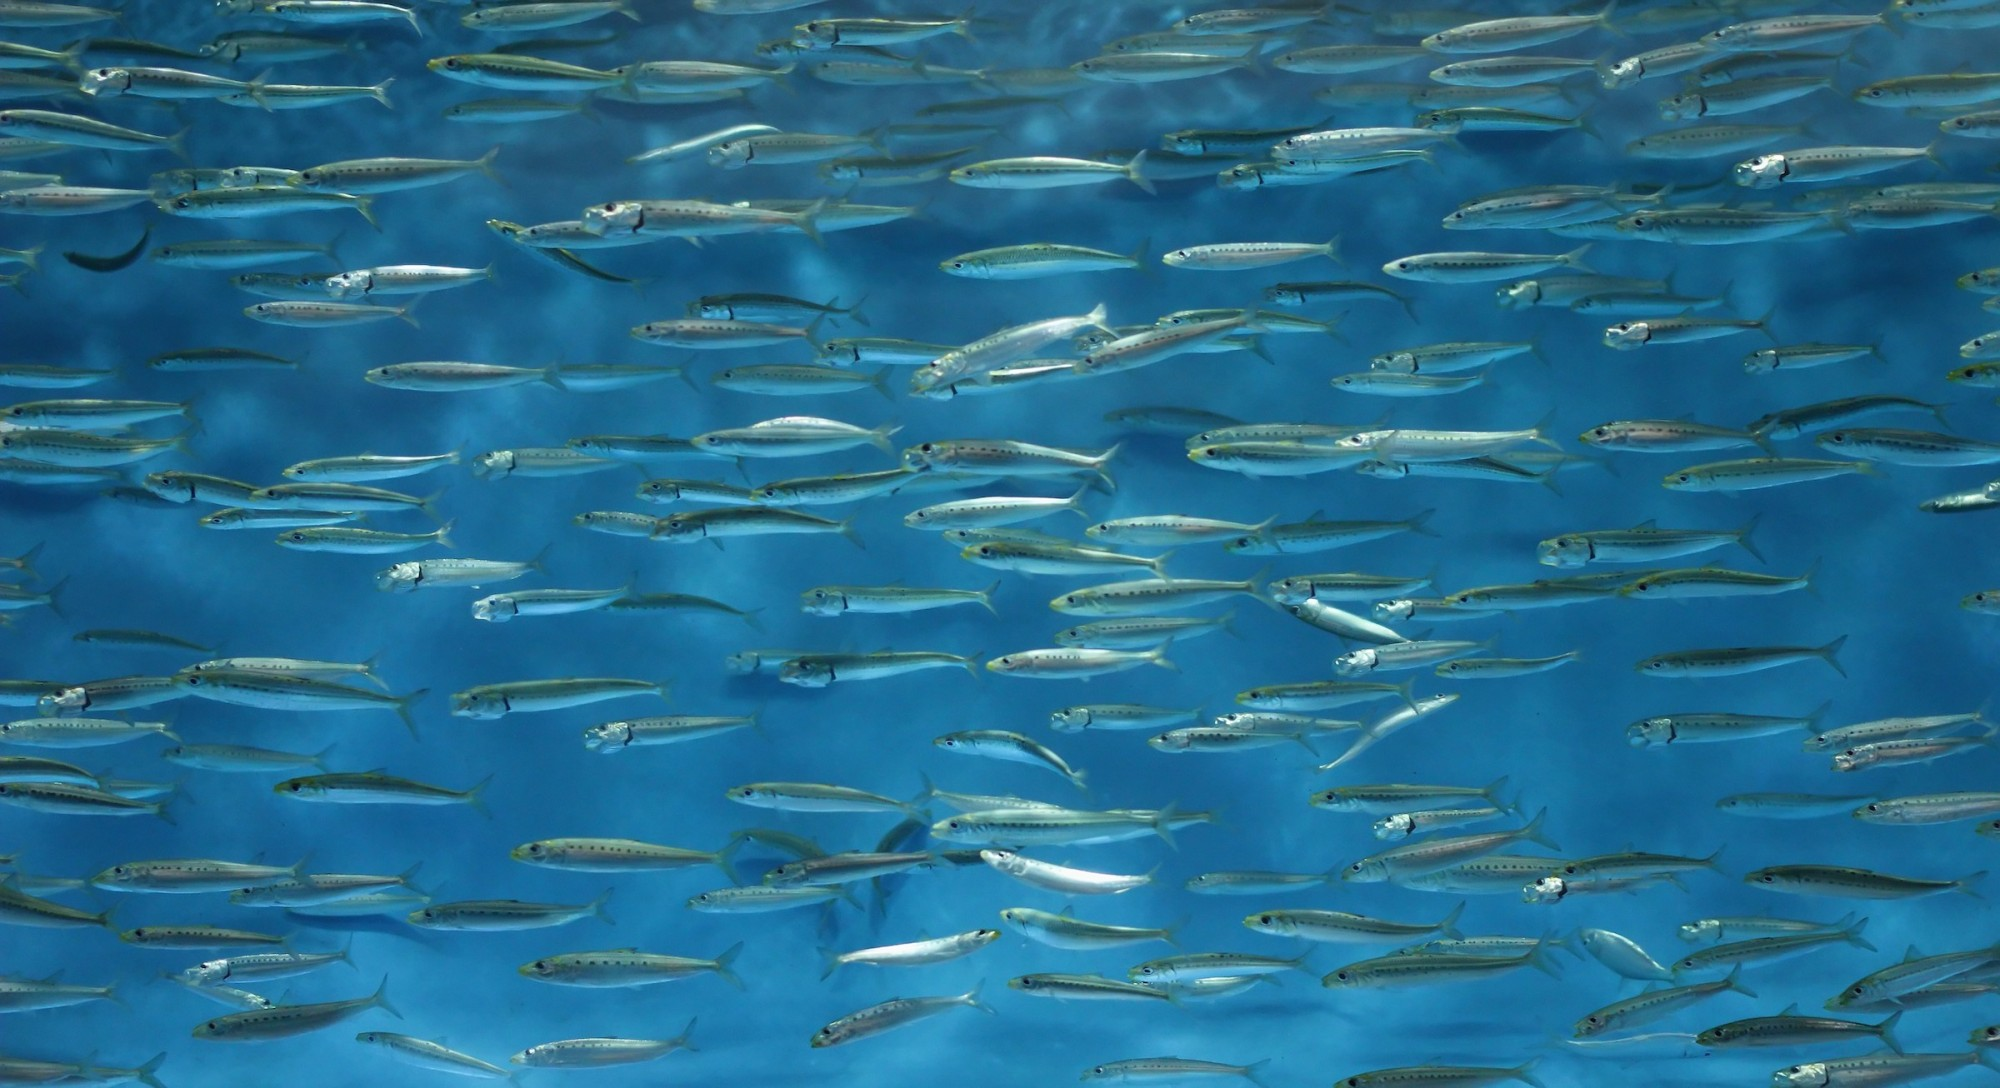 Can a Fish Food Made From Insects Make Aquaculture Sustainable?